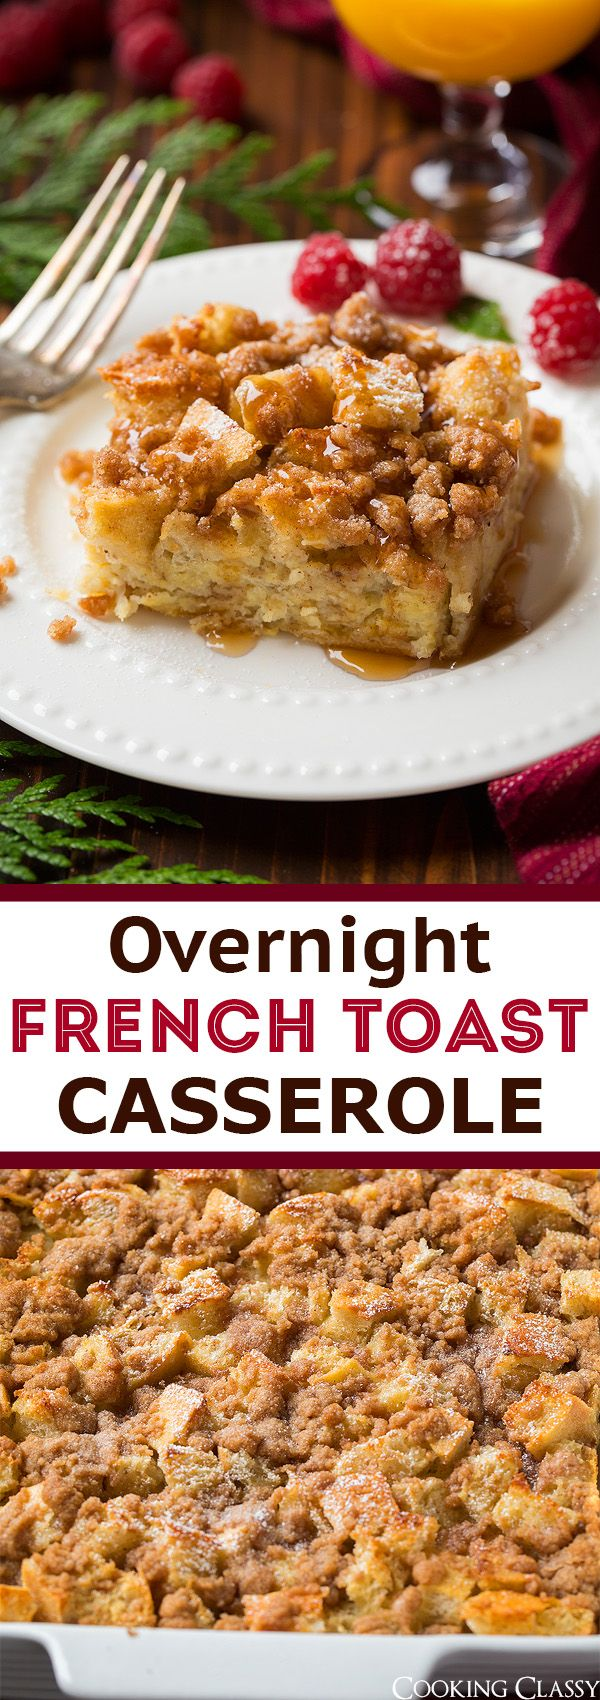 25+ Best Ideas About Best French Toast On Pinterest  French Bread French  Toast, French Toast Casserole And Cinnamon French Toast Bake